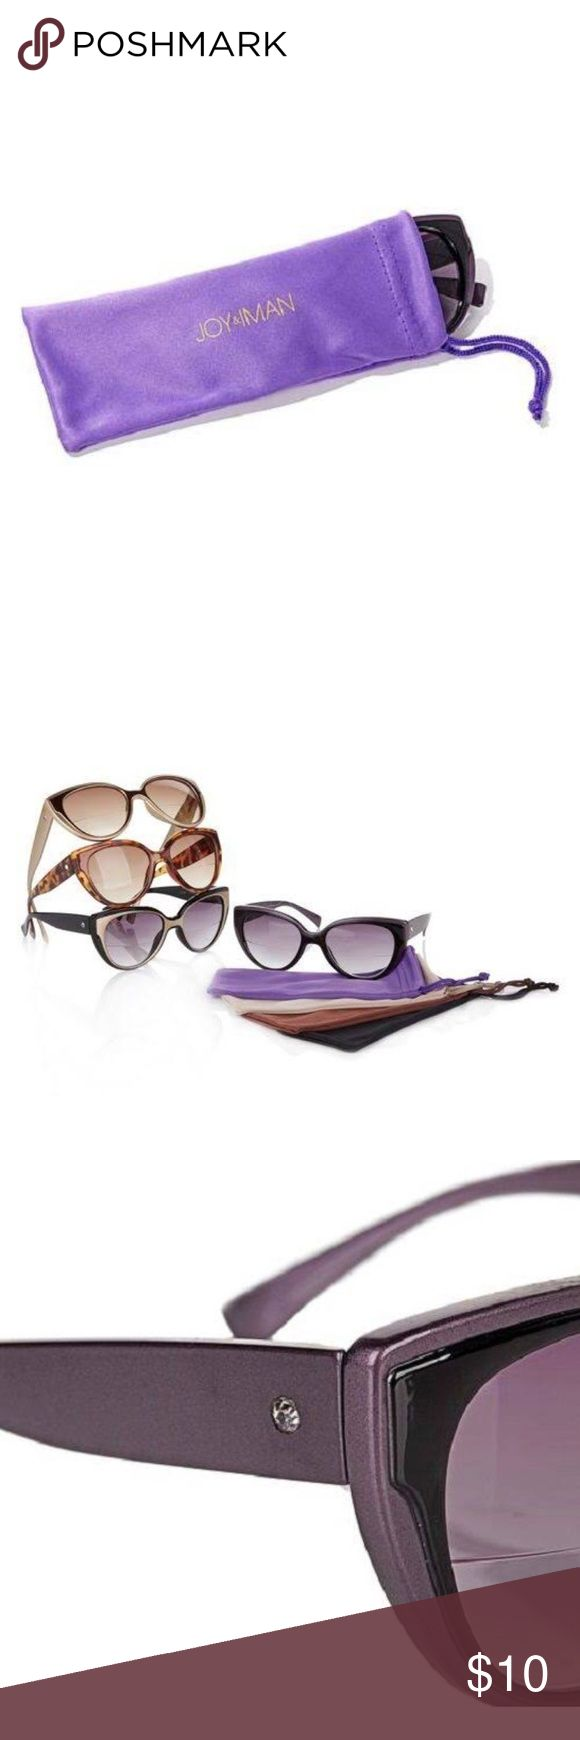 GOLDEN Bifocal Sunglasses Stylish Bifocal Sunglasses - perfect for reading a magazine on the beach or peruse a map in the car. Comes in a shimmery golden color with a dark golden orange silk case. The second picture shows the golden pair on the top. Perfect color for the fall season 🍂 joy and iman Accessories Glasses